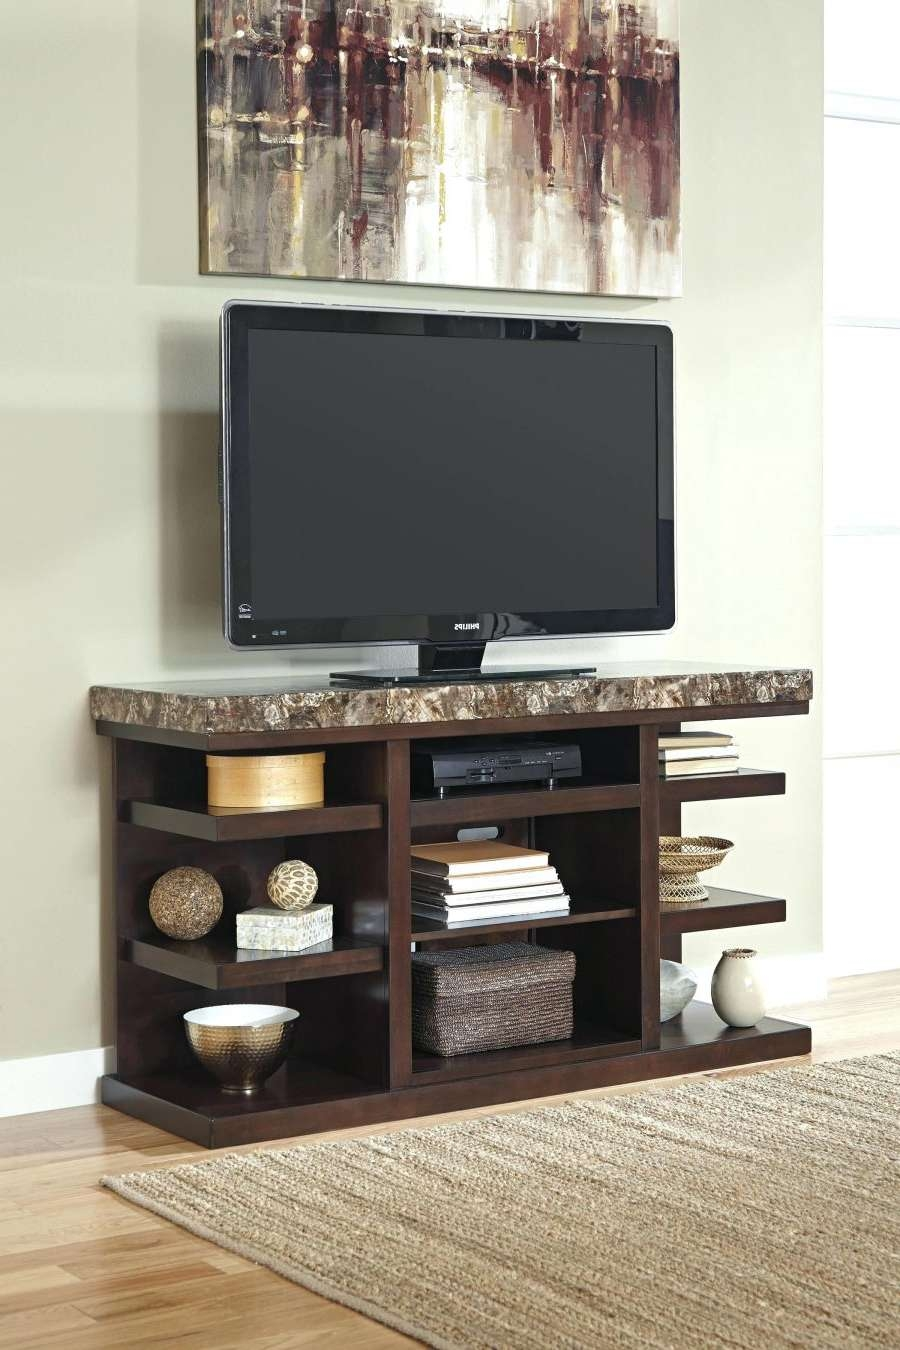 Tv Stand : Open Tv Stand Contemporary Large With Stone Look Top With Regard To Open Shelf Tv Stands (View 6 of 15)